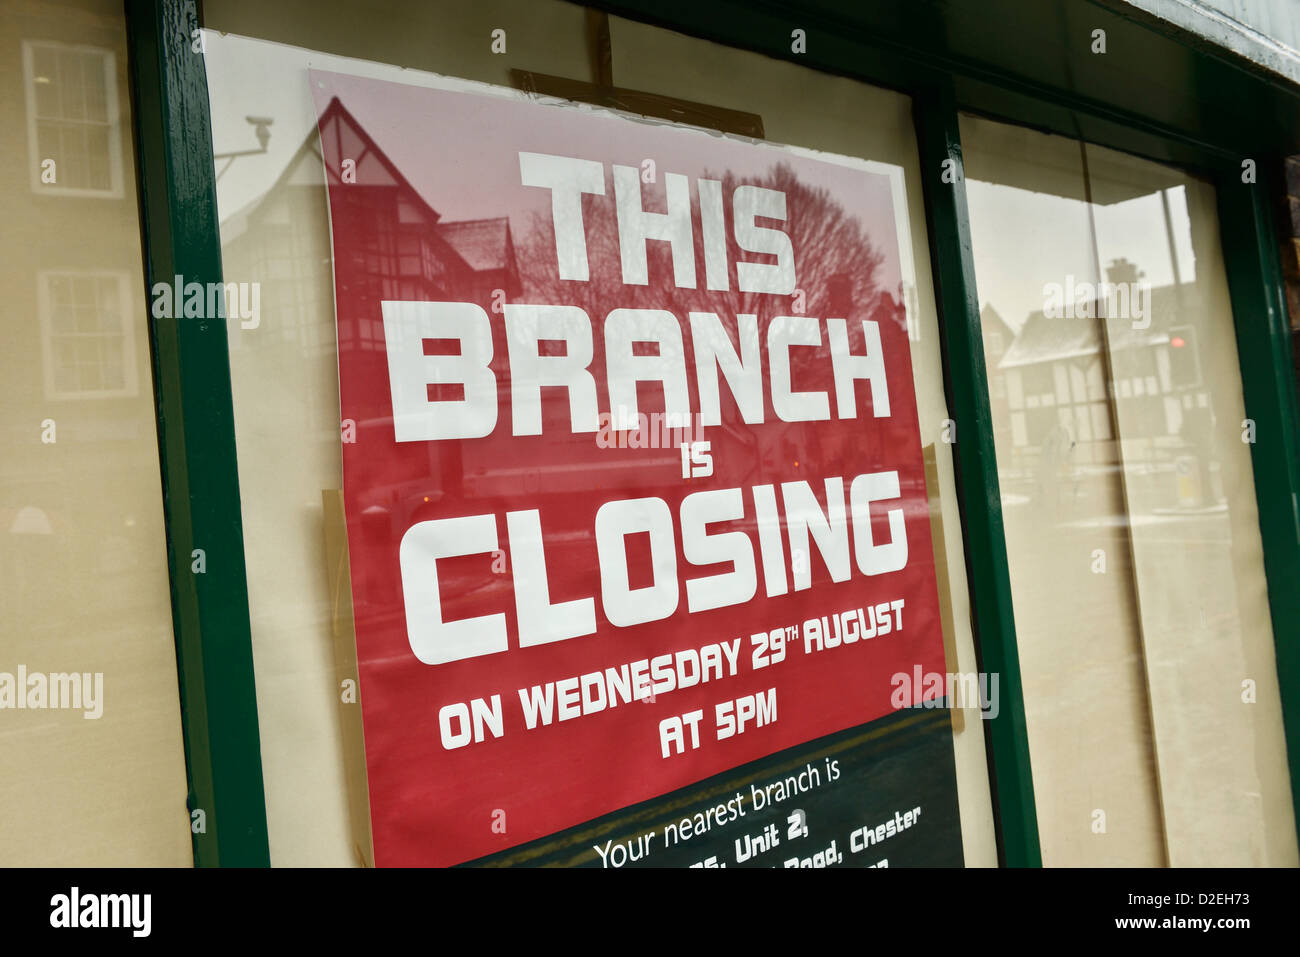 Closing down notice in a shop window - Stock Image